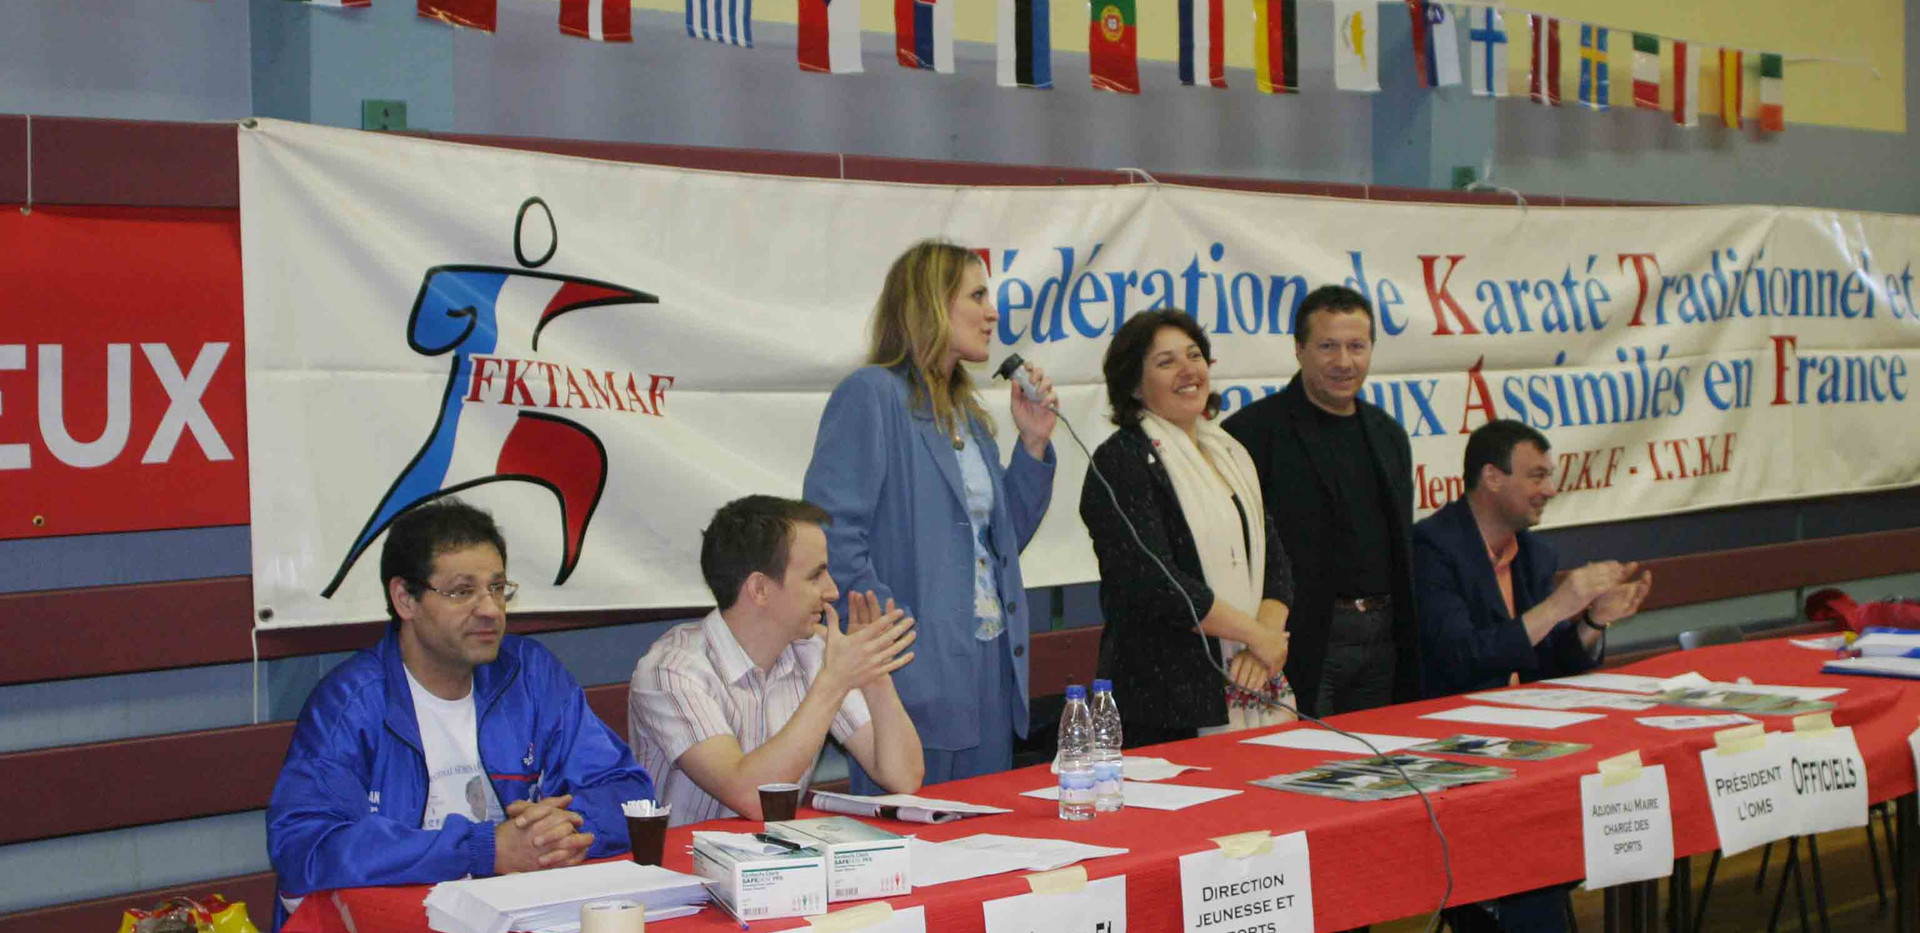 7trophee international 3 avril 05 140.jp